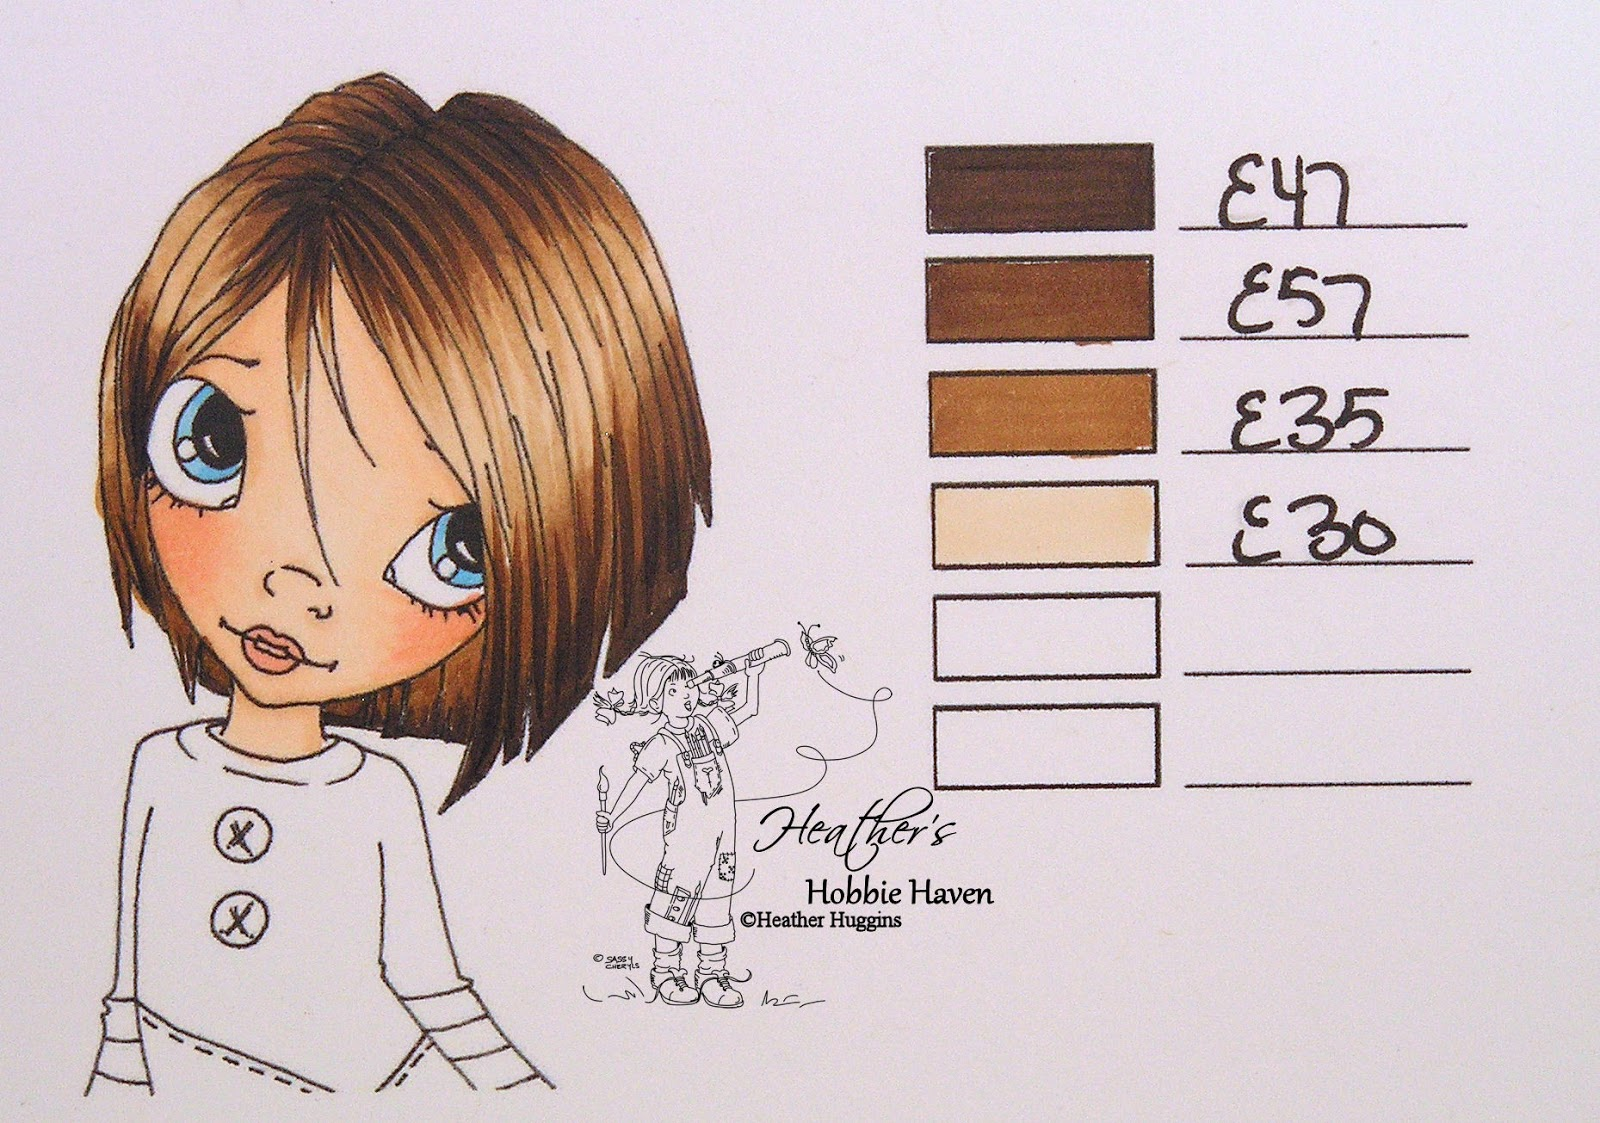 Heathers hobbie haven hair color 56 copic markers hair color 56 copic markers nvjuhfo Image collections